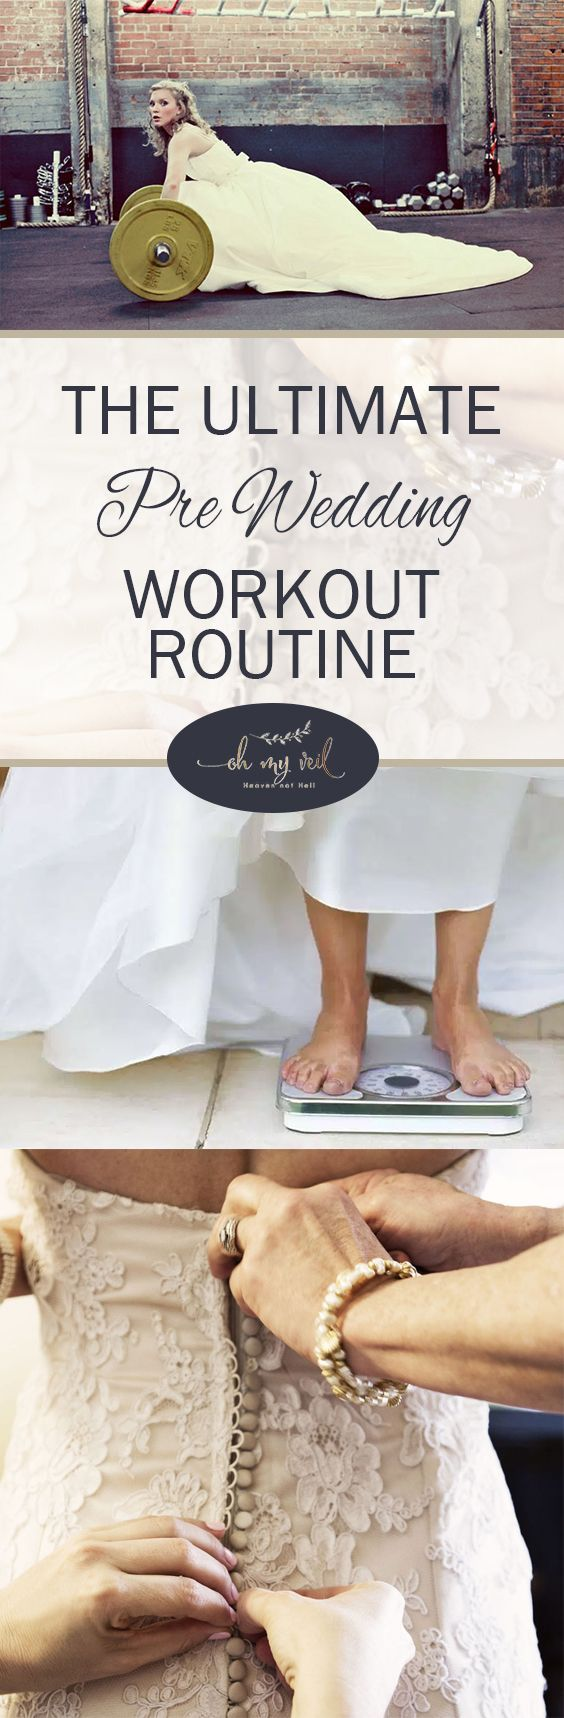 The Ultimate Pre Wedding Workout Routine